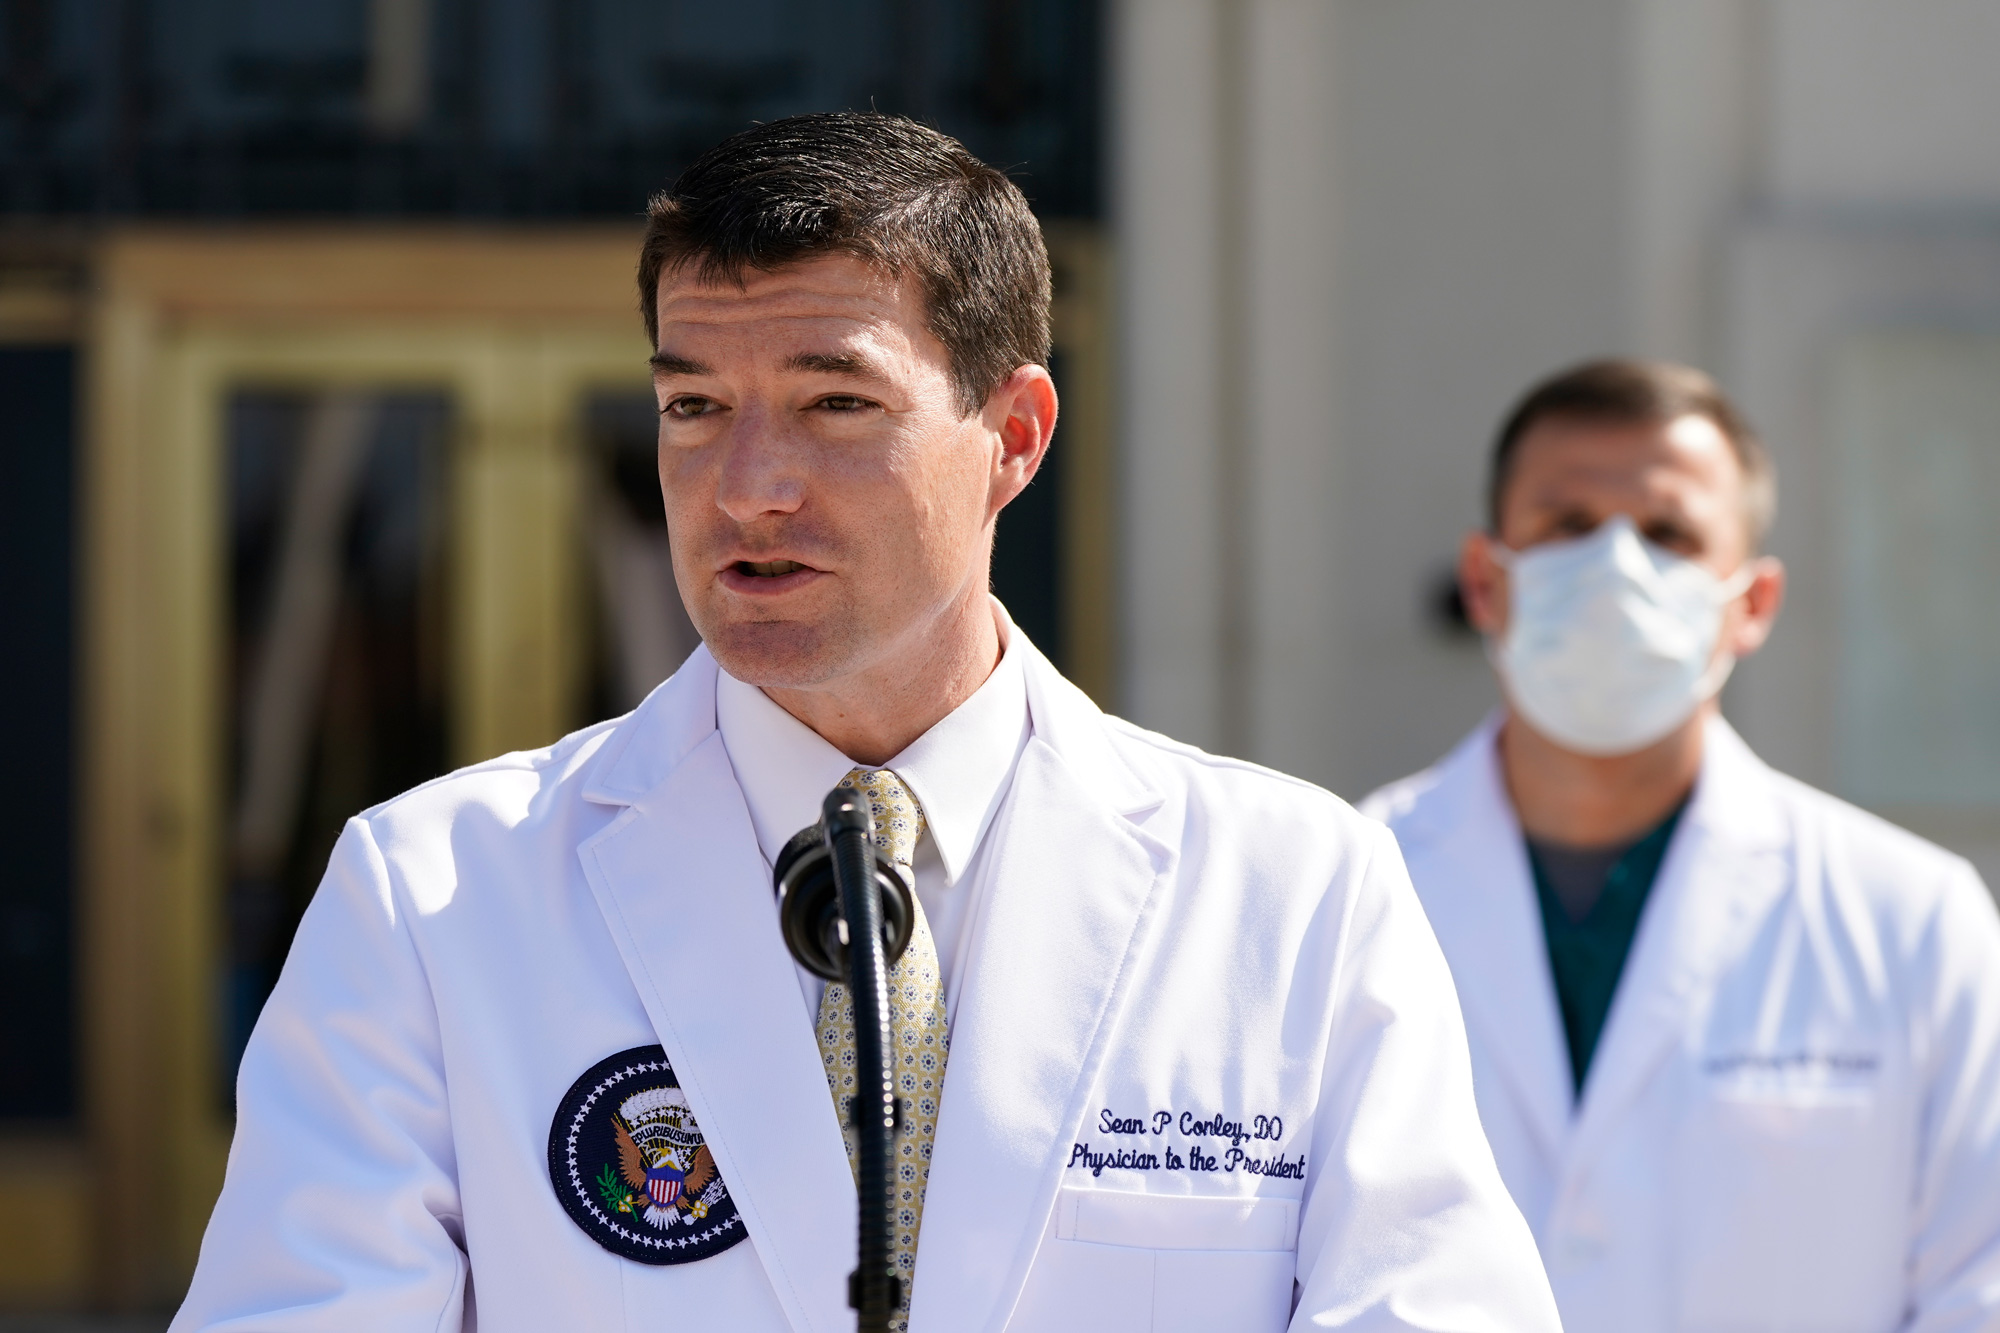 Dr. Sean Conley, physician to President Donald Trump, briefs reporters at Walter Reed National Military Medical Center in Bethesda, Maryland, on October 4.